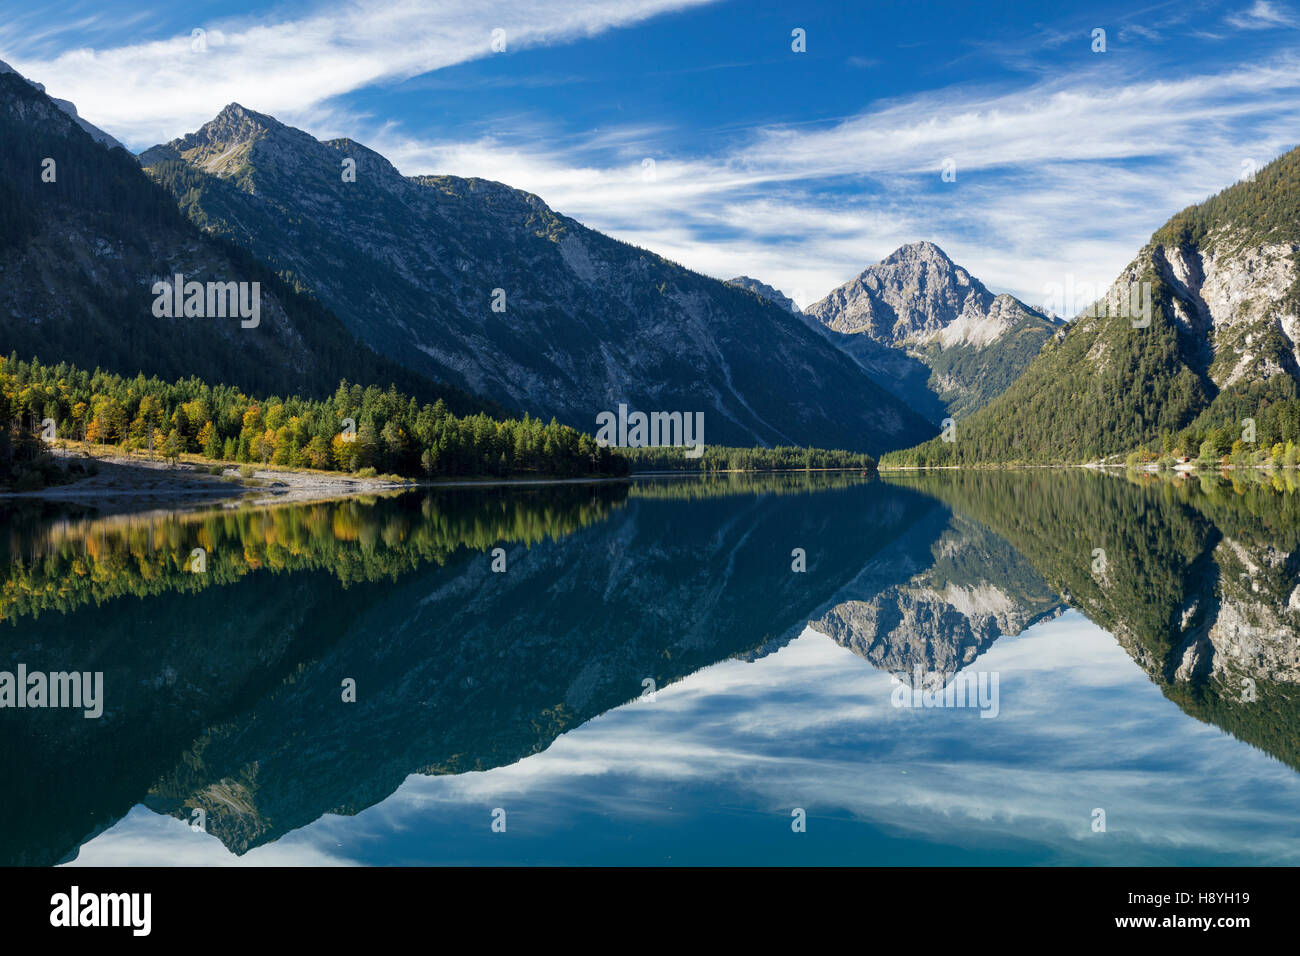 Tyrolean Alps reflected in Plansee, Tyrol, Austria - Stock Image